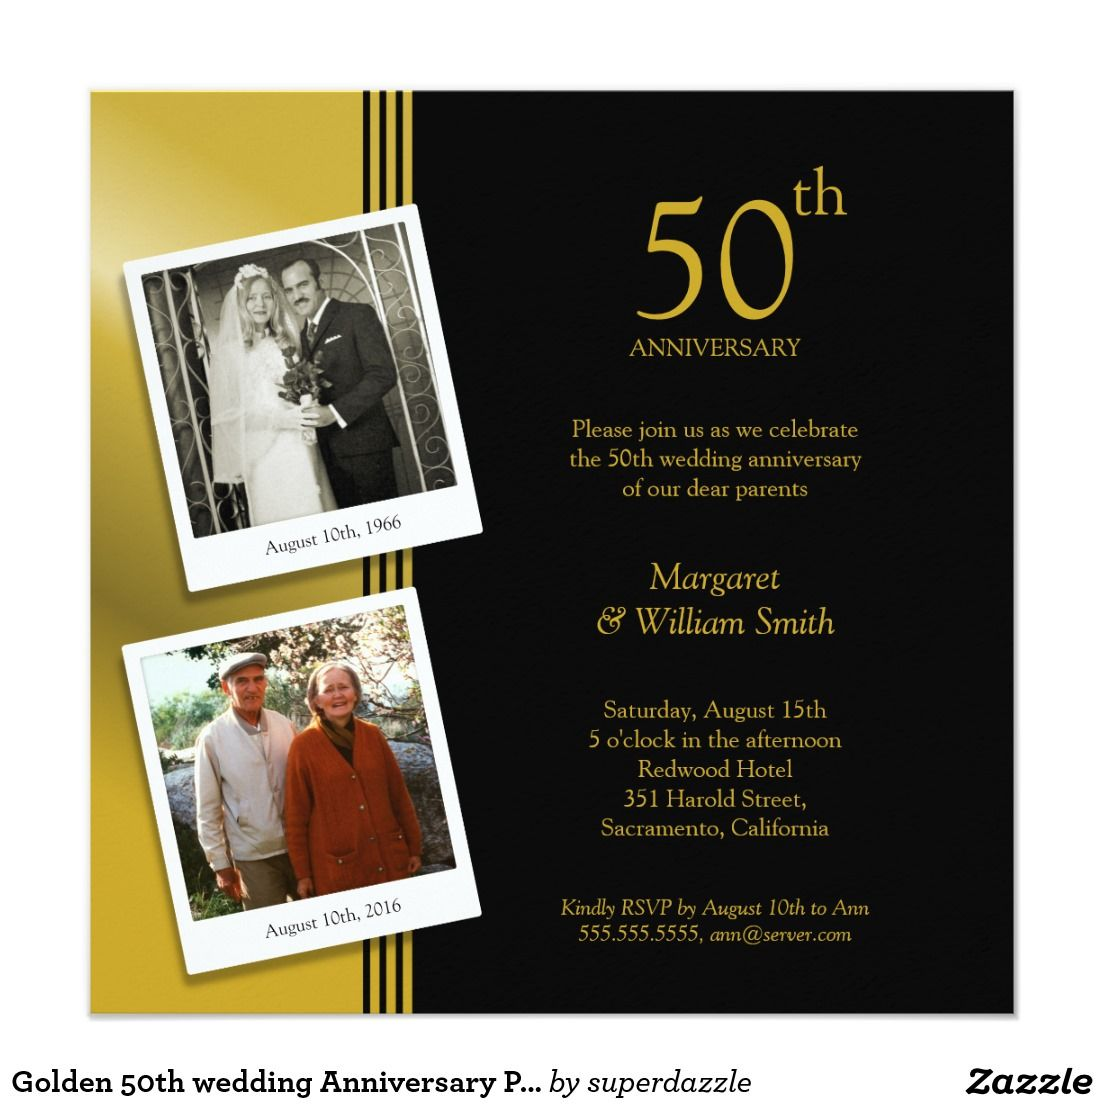 Golden 50th wedding Anniversary Party Invitation Plus 2 Photos ...